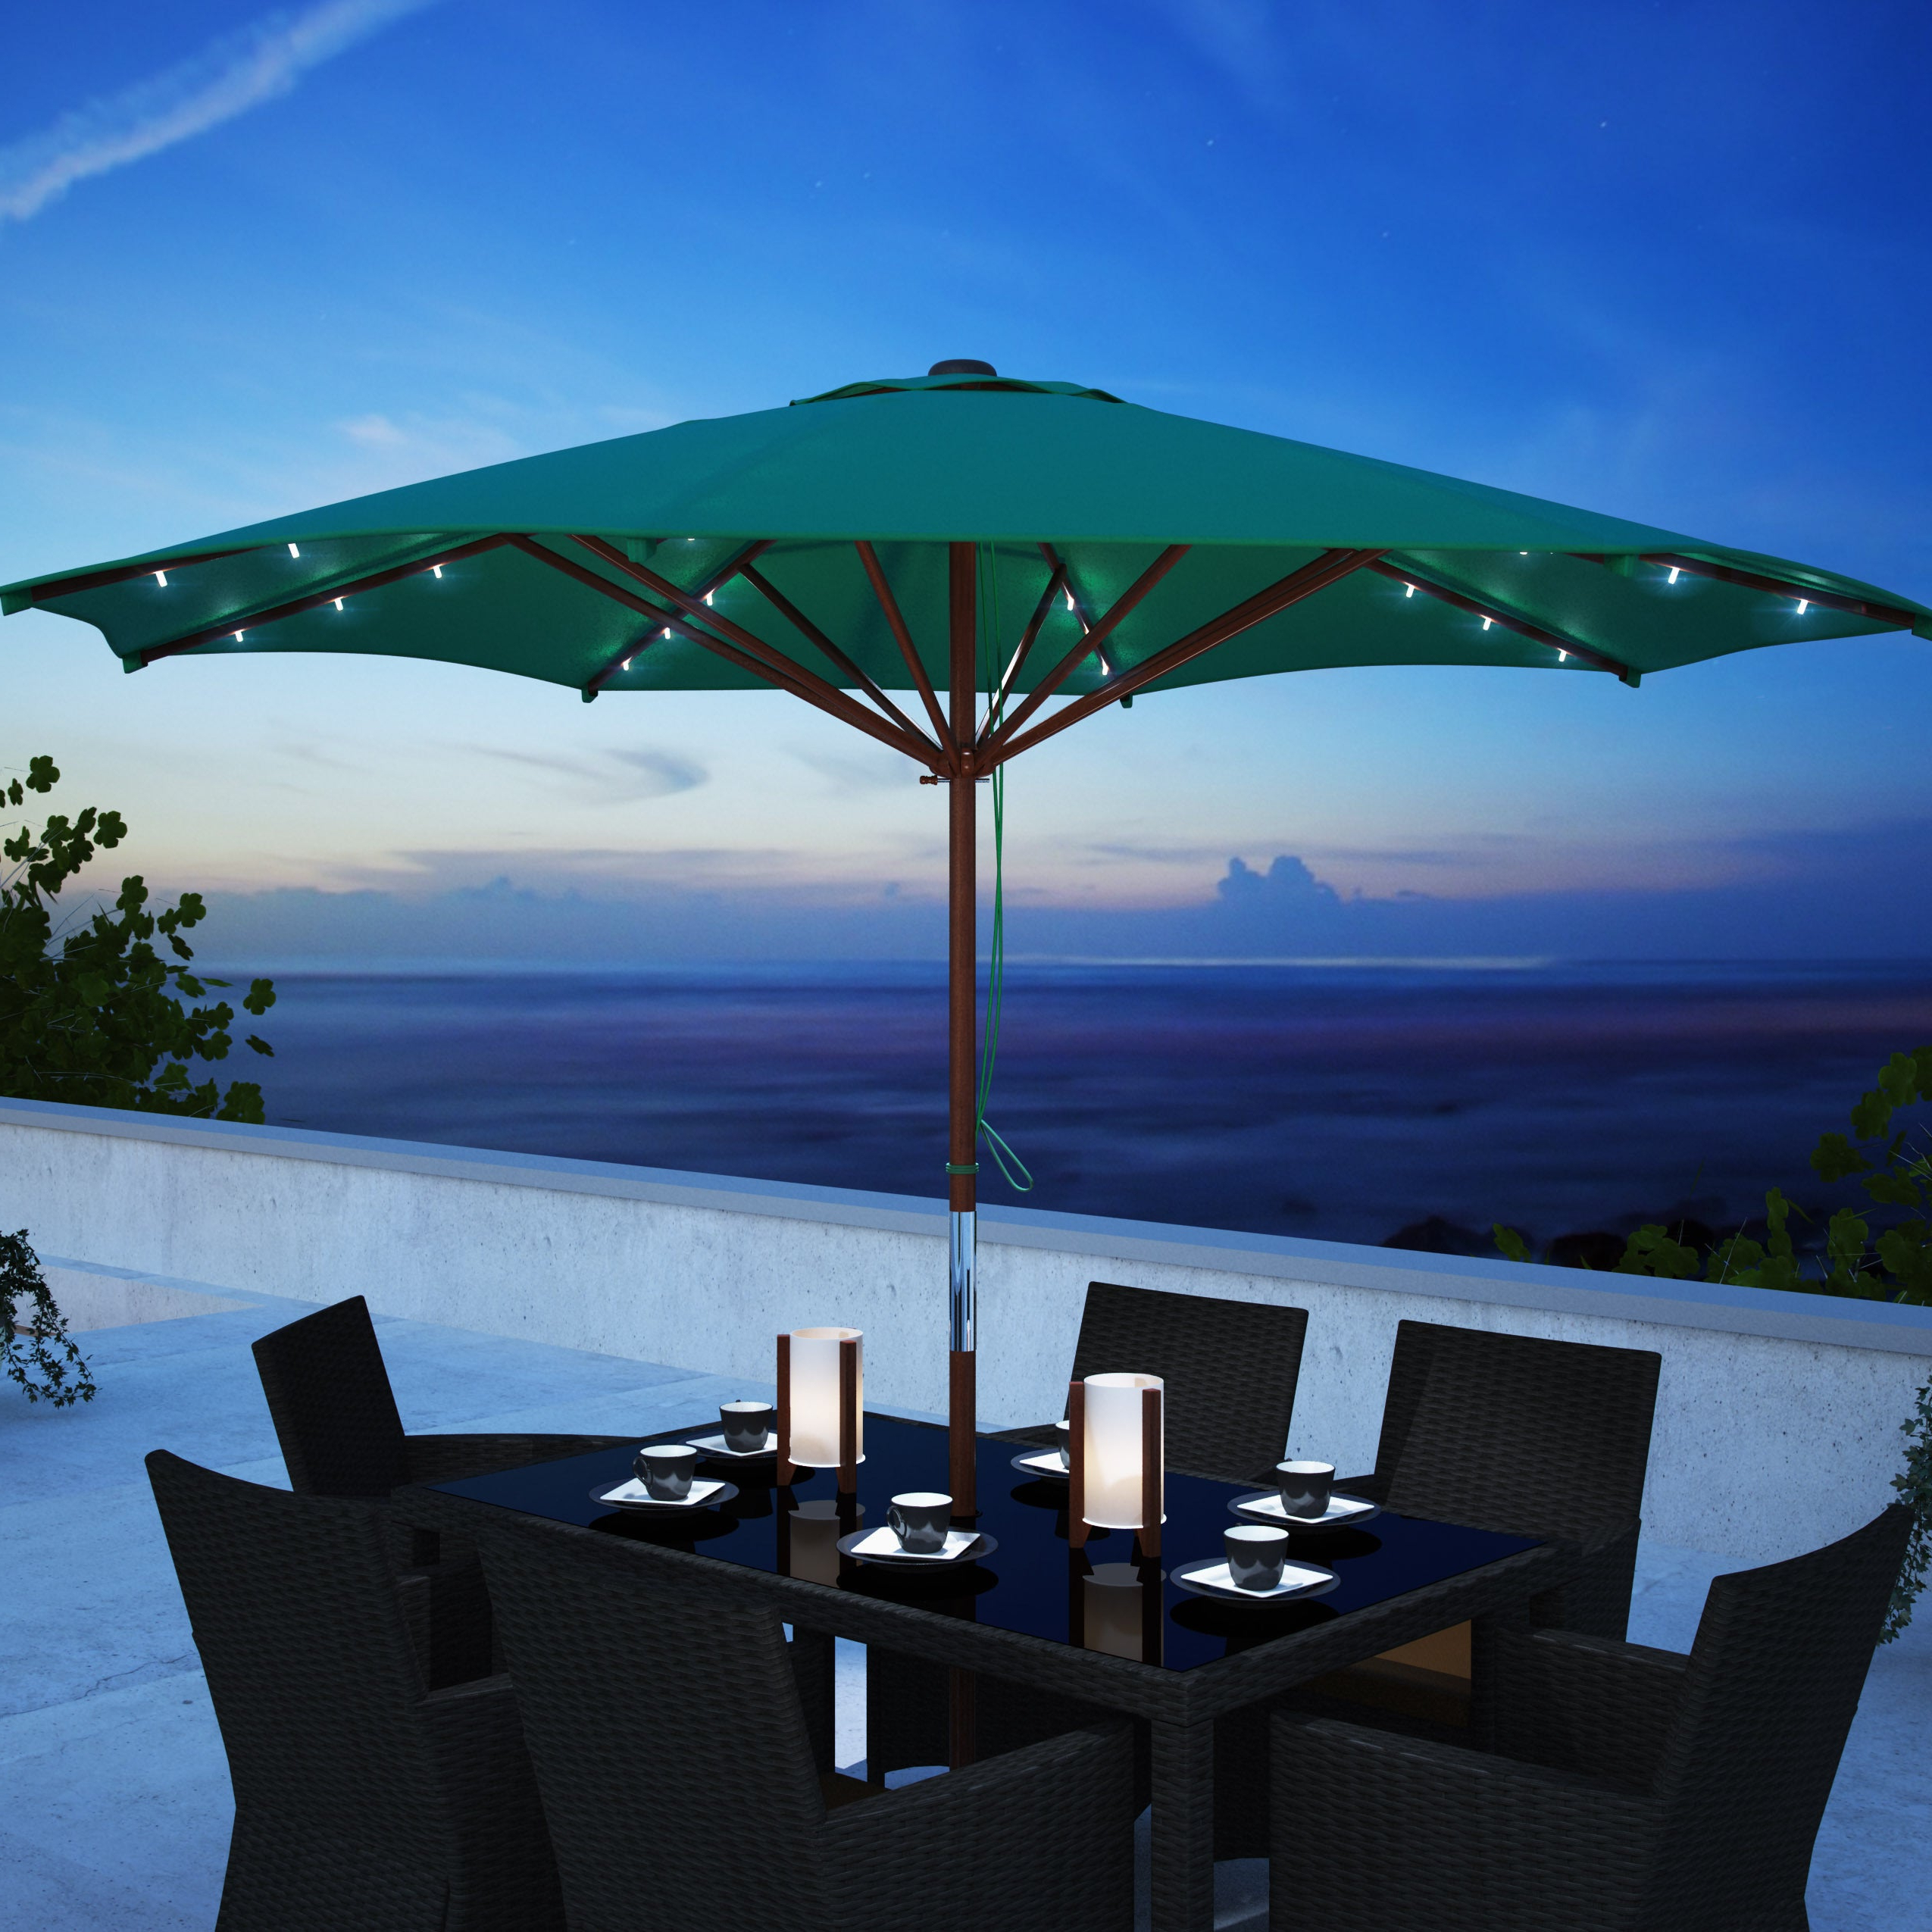 Most Popular Solar Powered Led Patio Umbrellas For Havenside Home North Bend Patio Umbrella With Solar Power Led Lights (View 14 of 20)